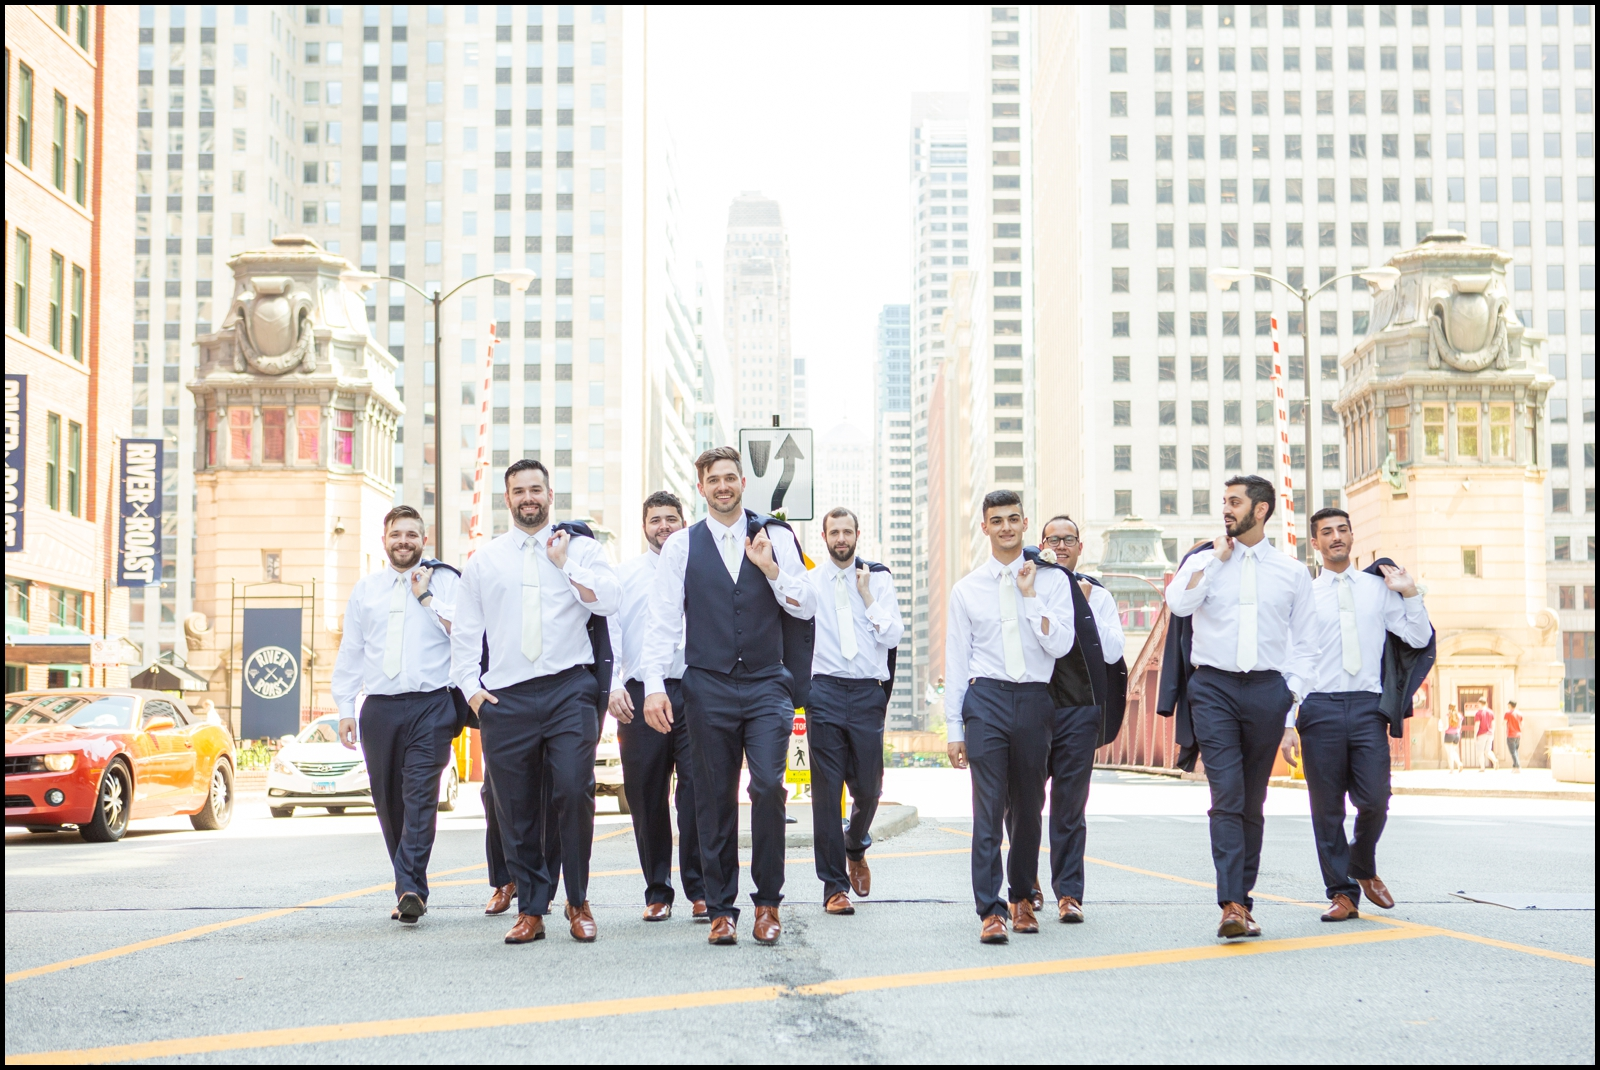 Groomsmen in Chicago